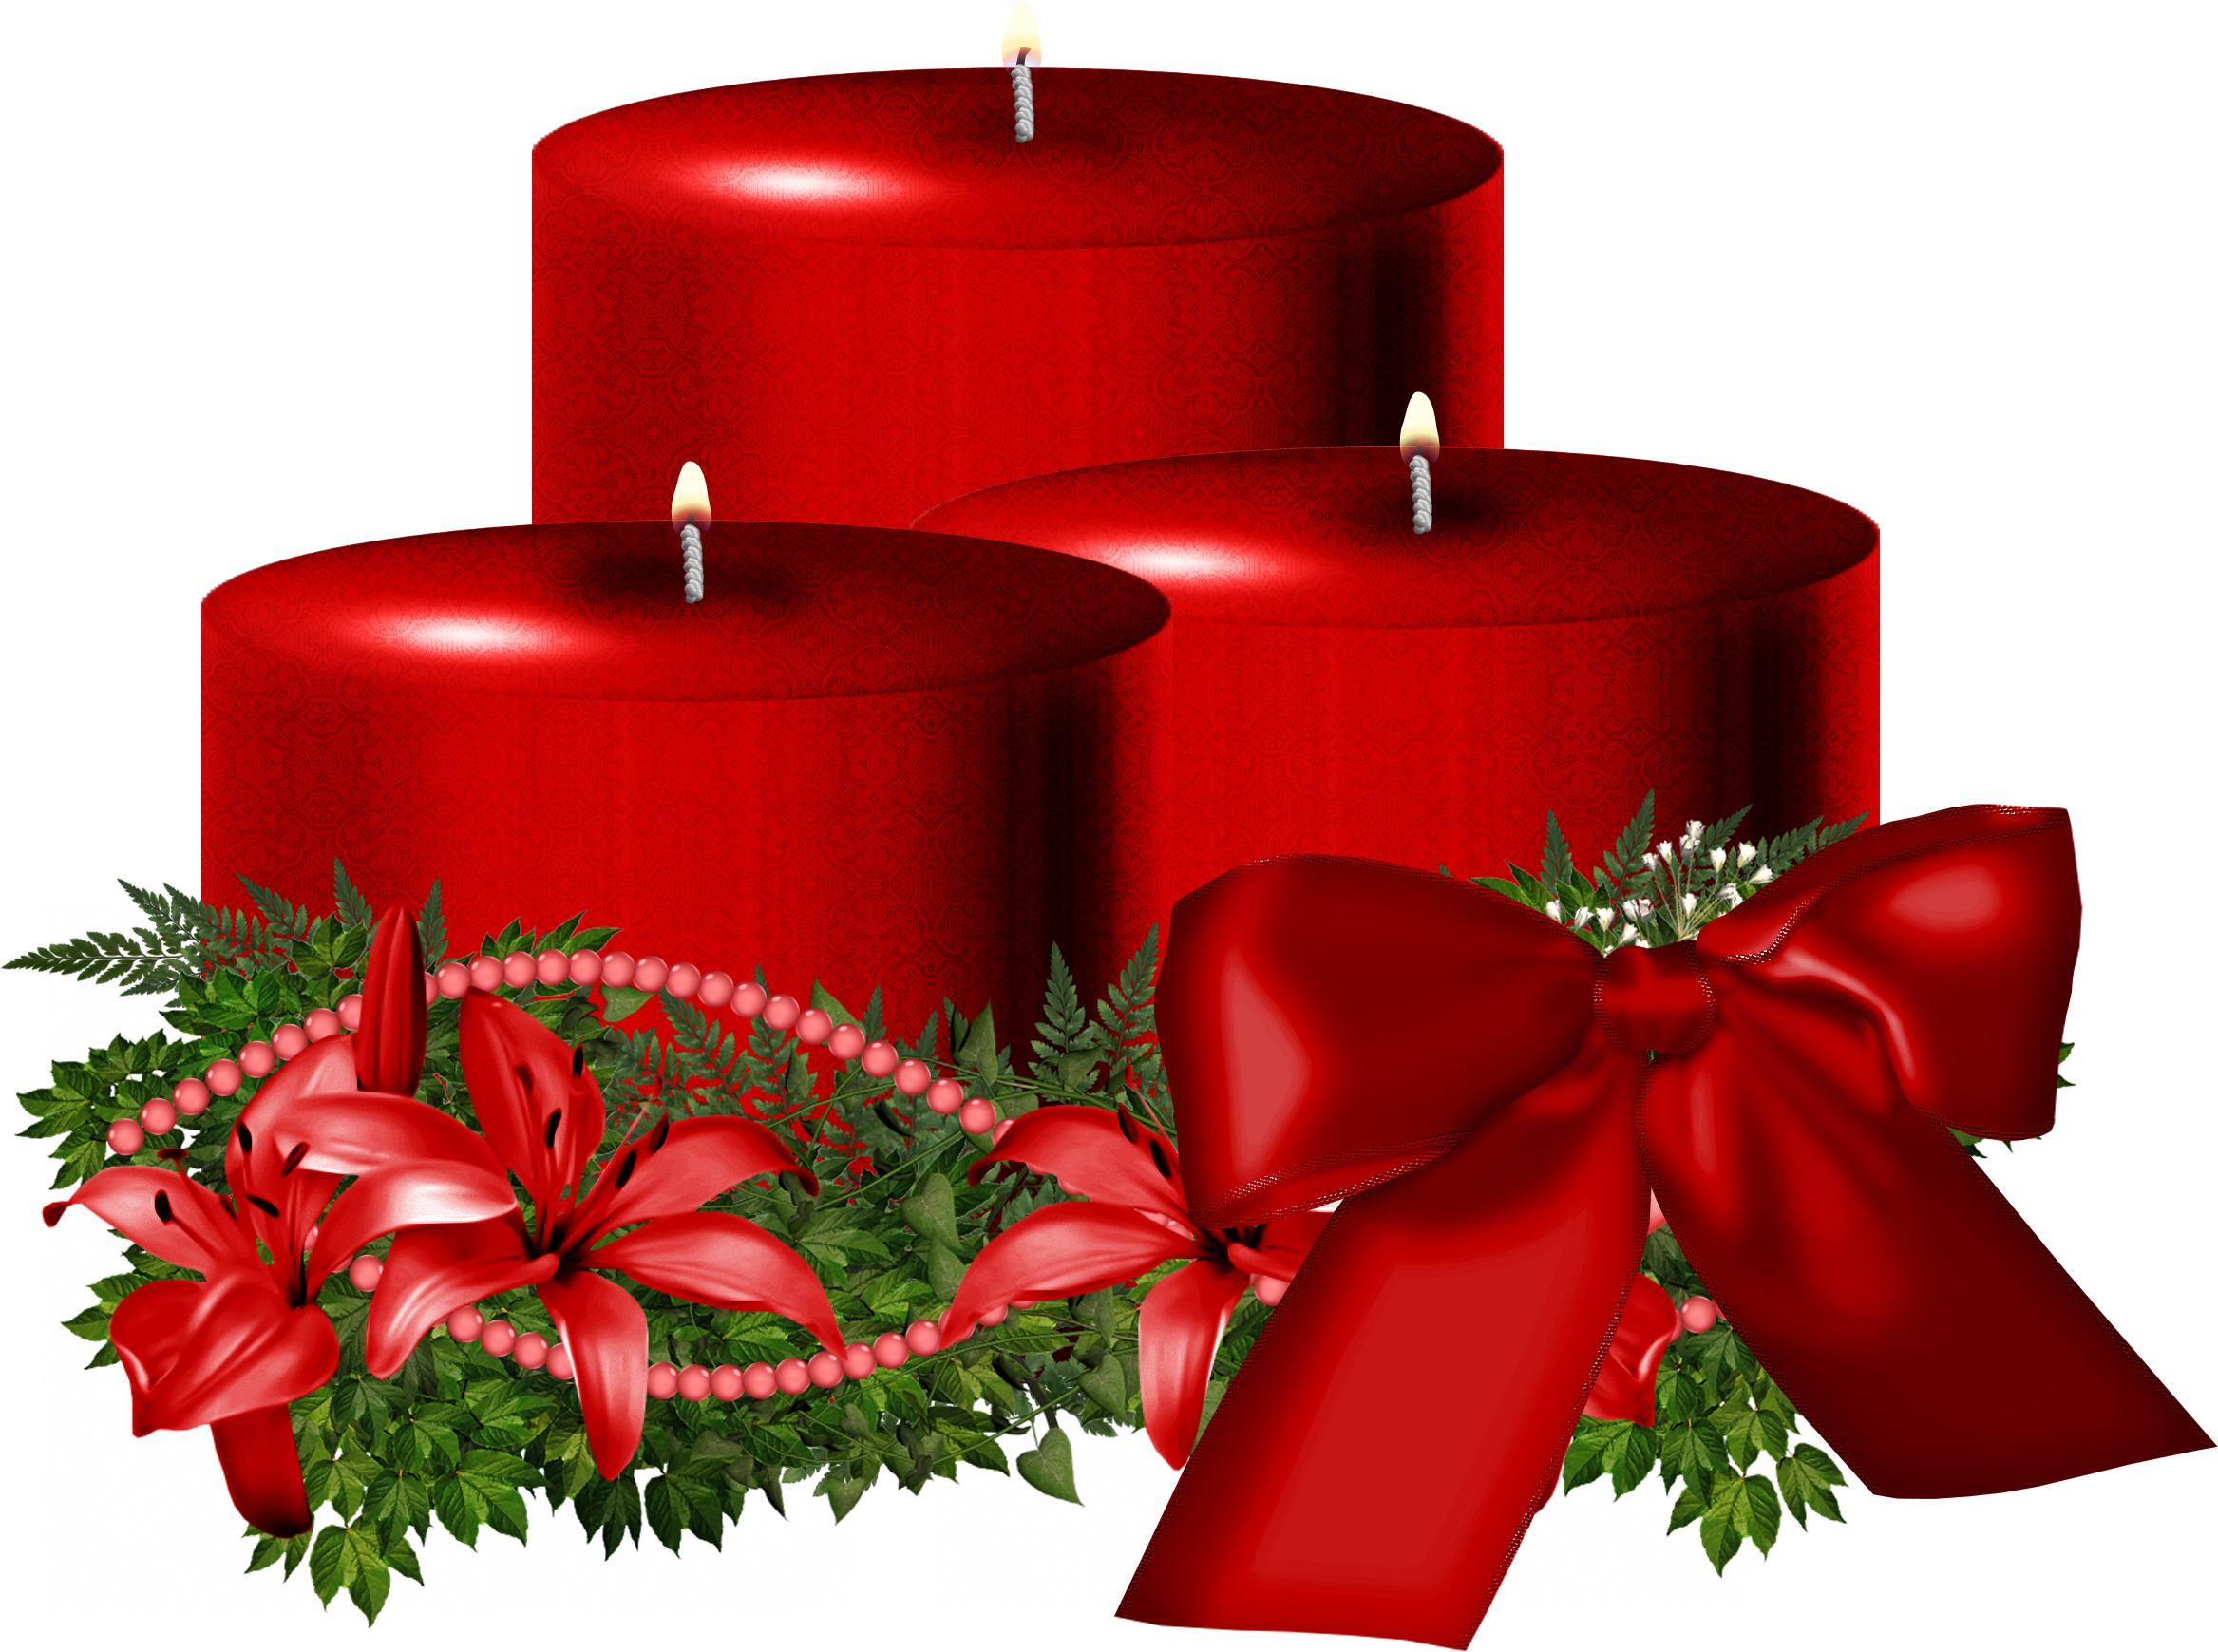 Christmas ornaments clear background images png candles. Red candle image purepng